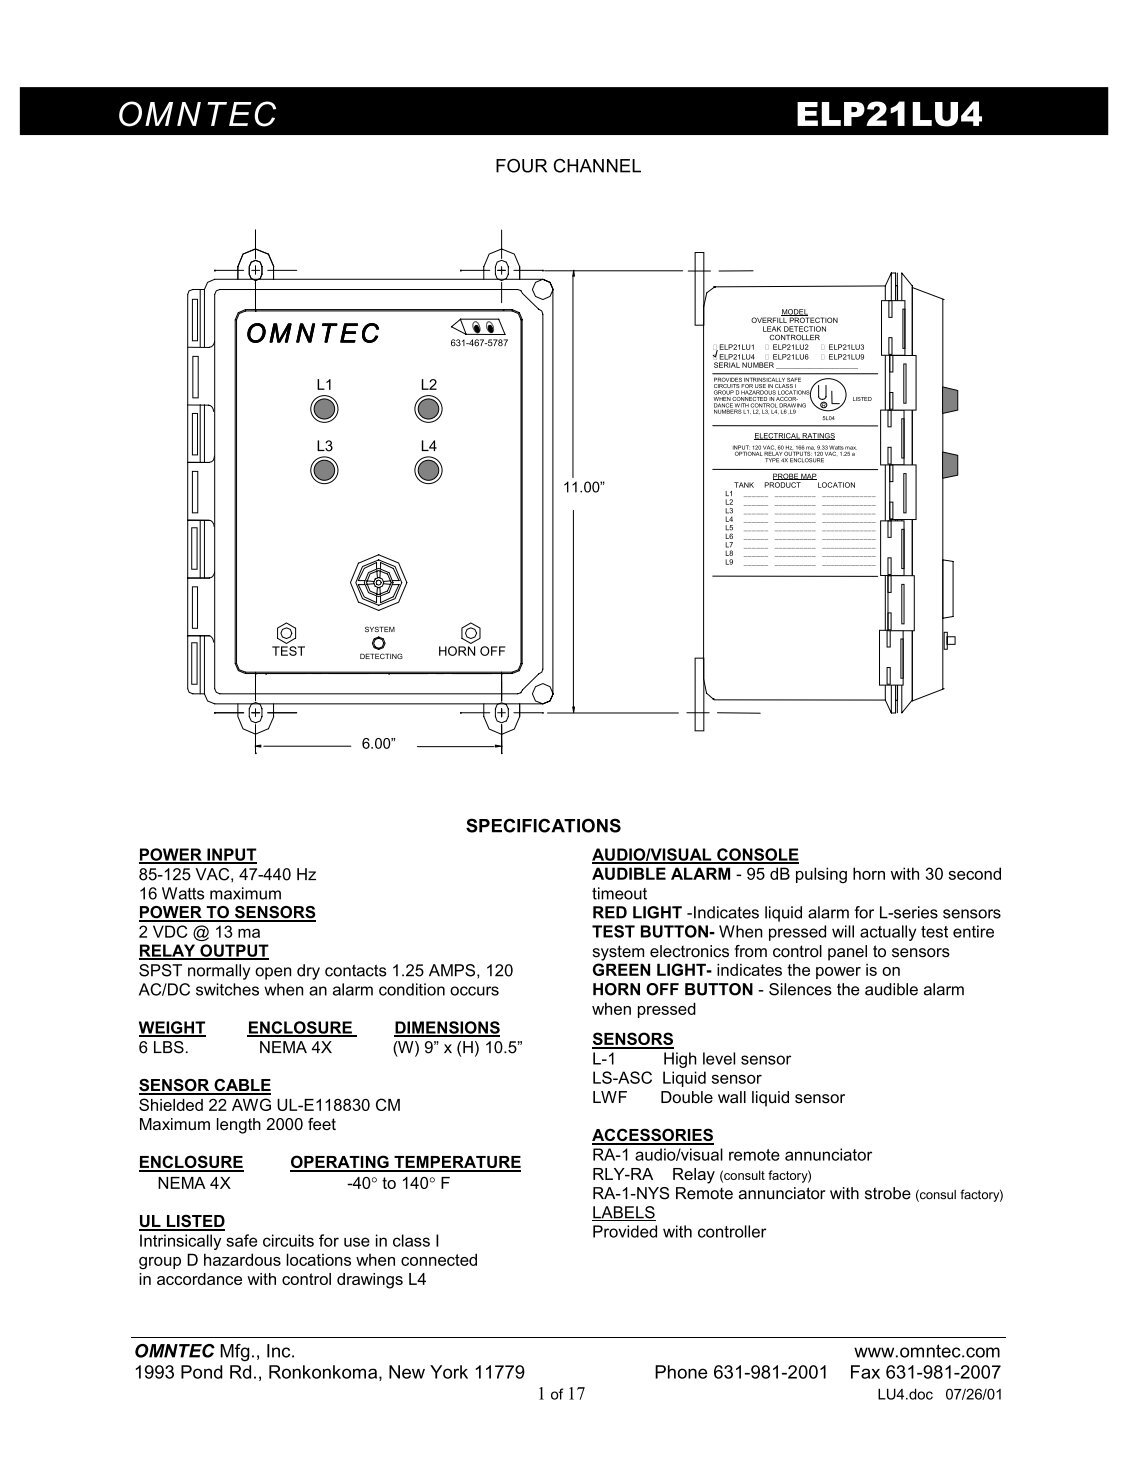 Honeywell Thermostat Manual Rth221b1000 Basic Instruction Rth7600 Wiring Download Diagrams Traeger Digital Diagram And Schematics Instructions Rth221b